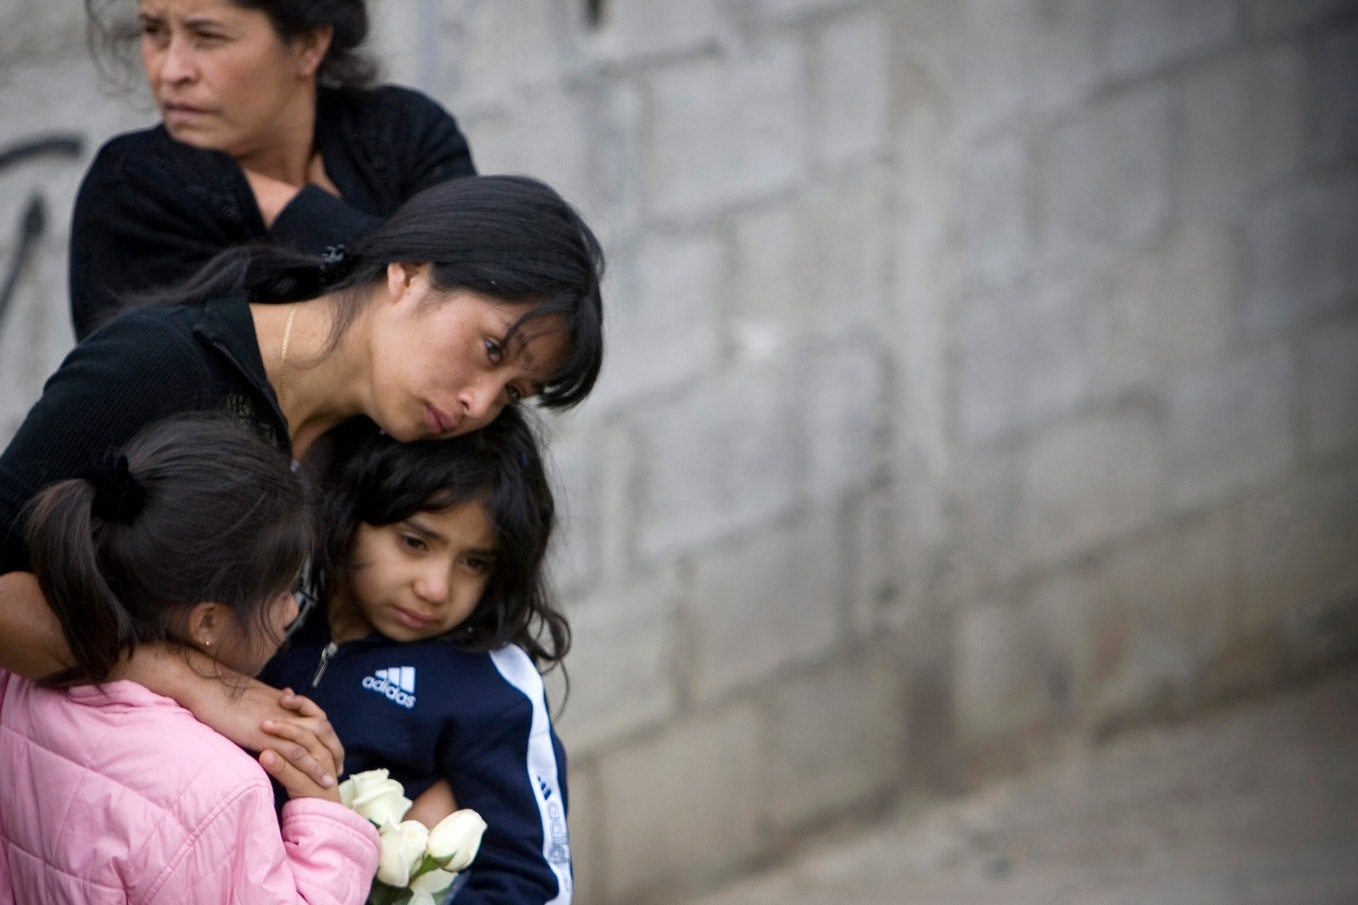 A woman hugging two young girls